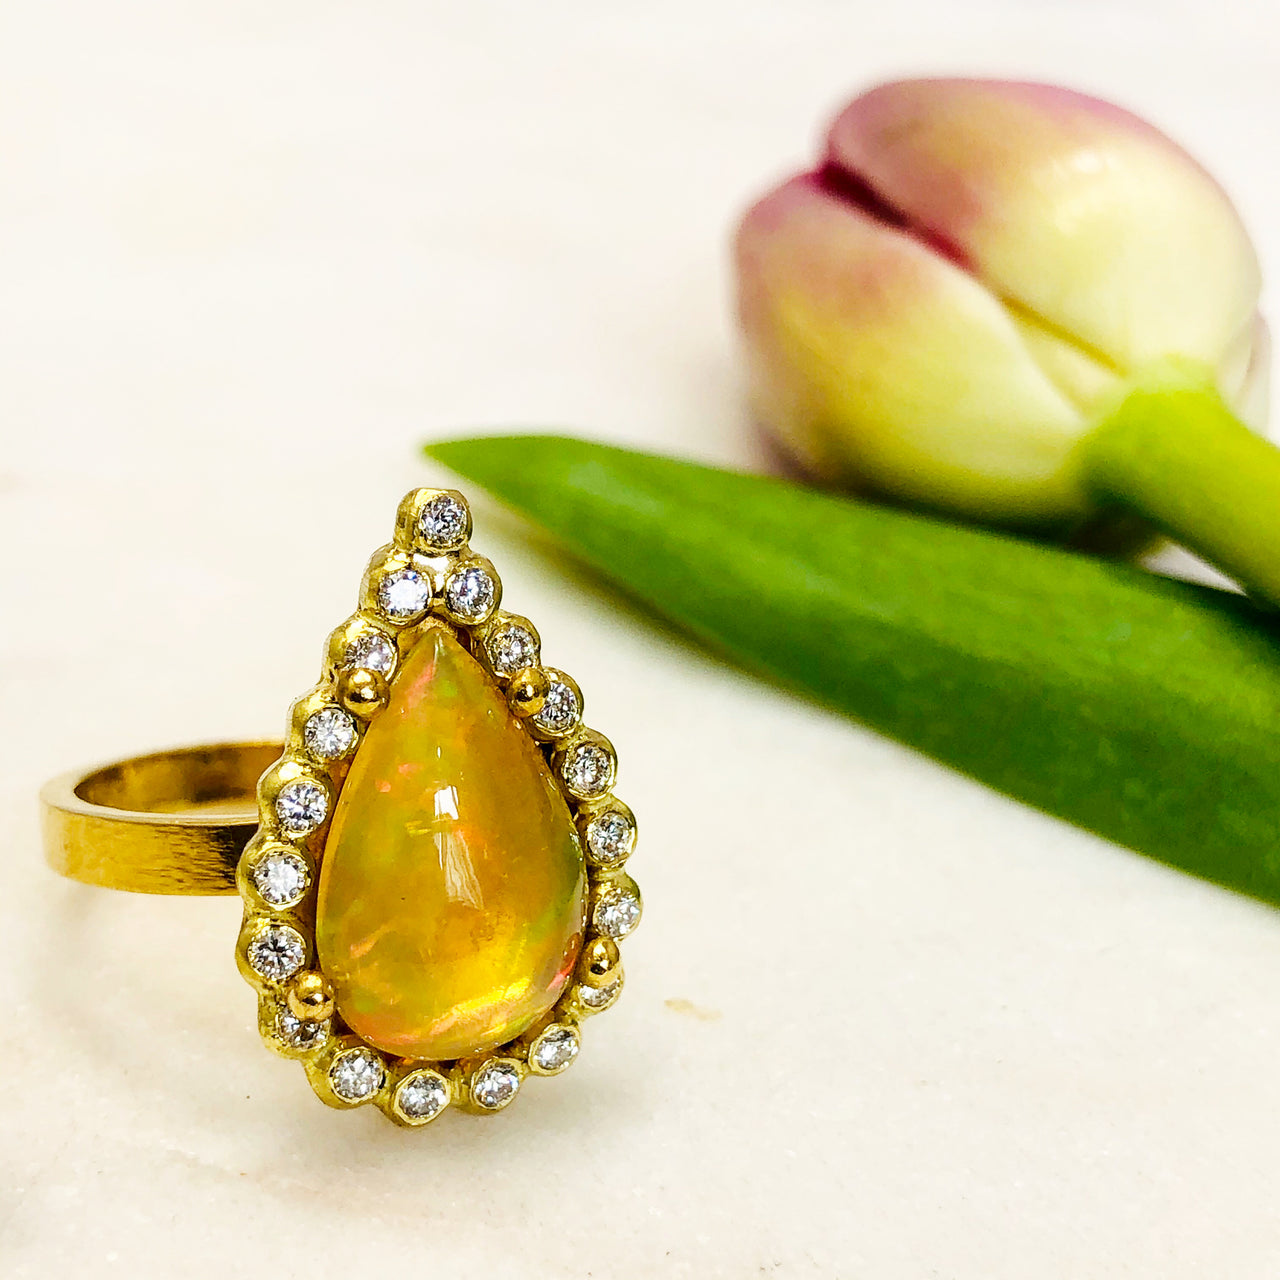 22K Yellow Gold Ethiopean Opal and Diamond Ring.